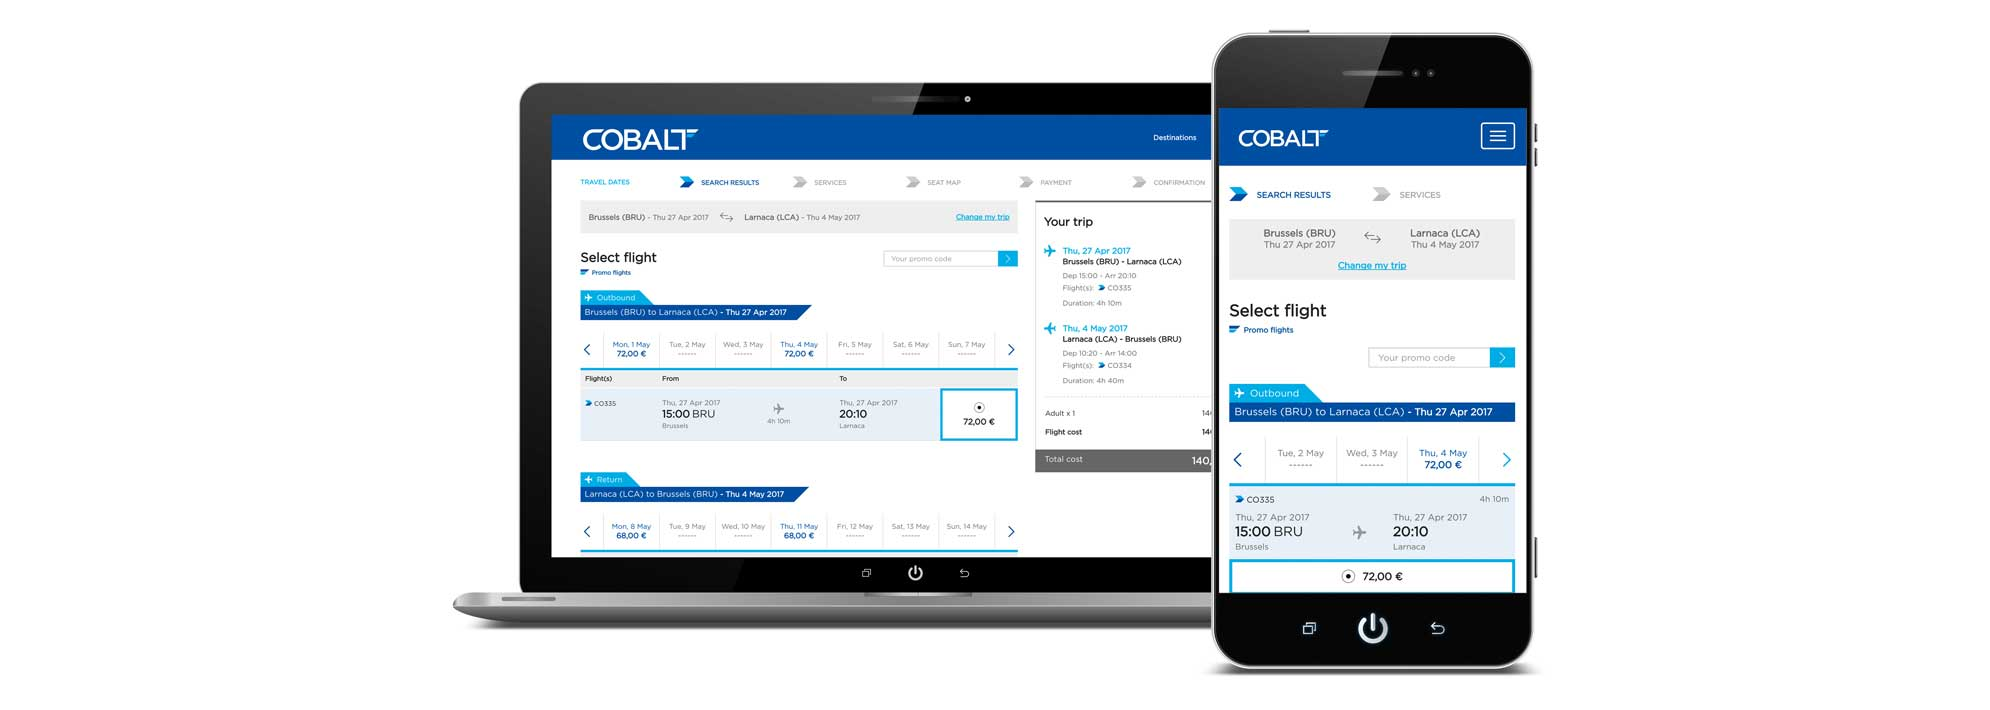 Cobalt, Cyprus' new national carrier, starts ticket sales through new internet booking engine, implemented by Newshore